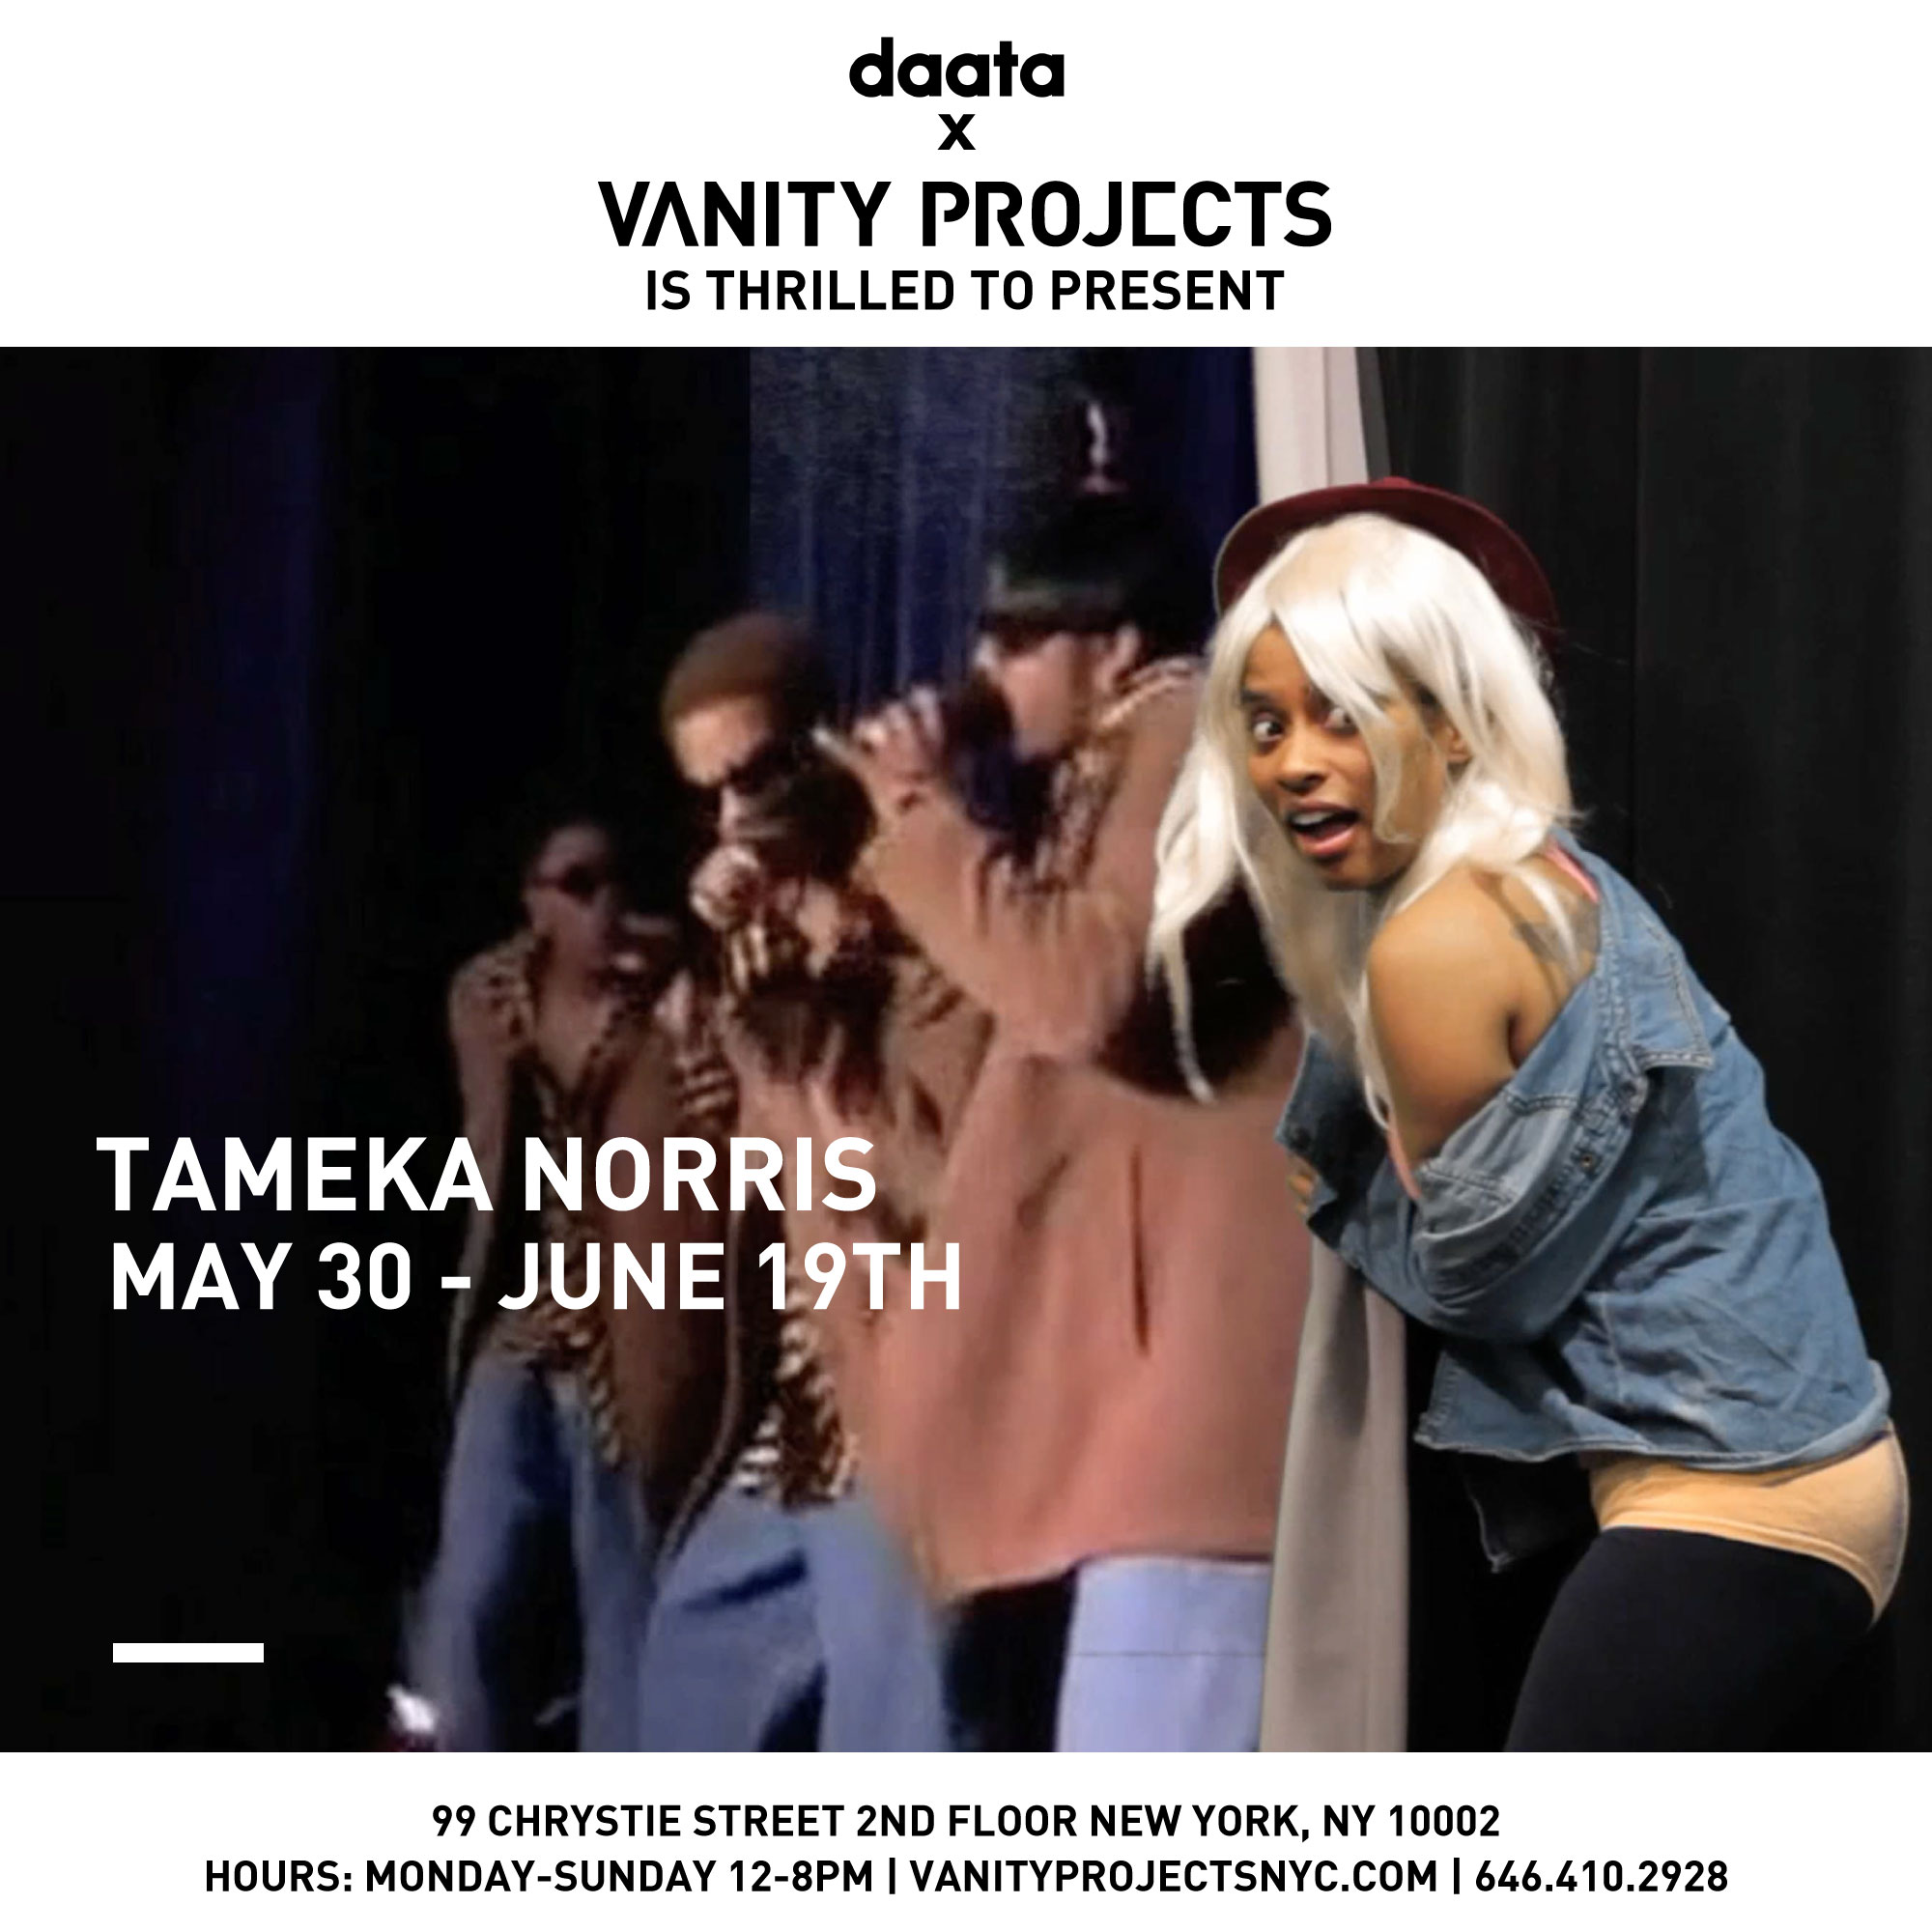 vp_announcements_daata_tameka_norris_nyc.jpg